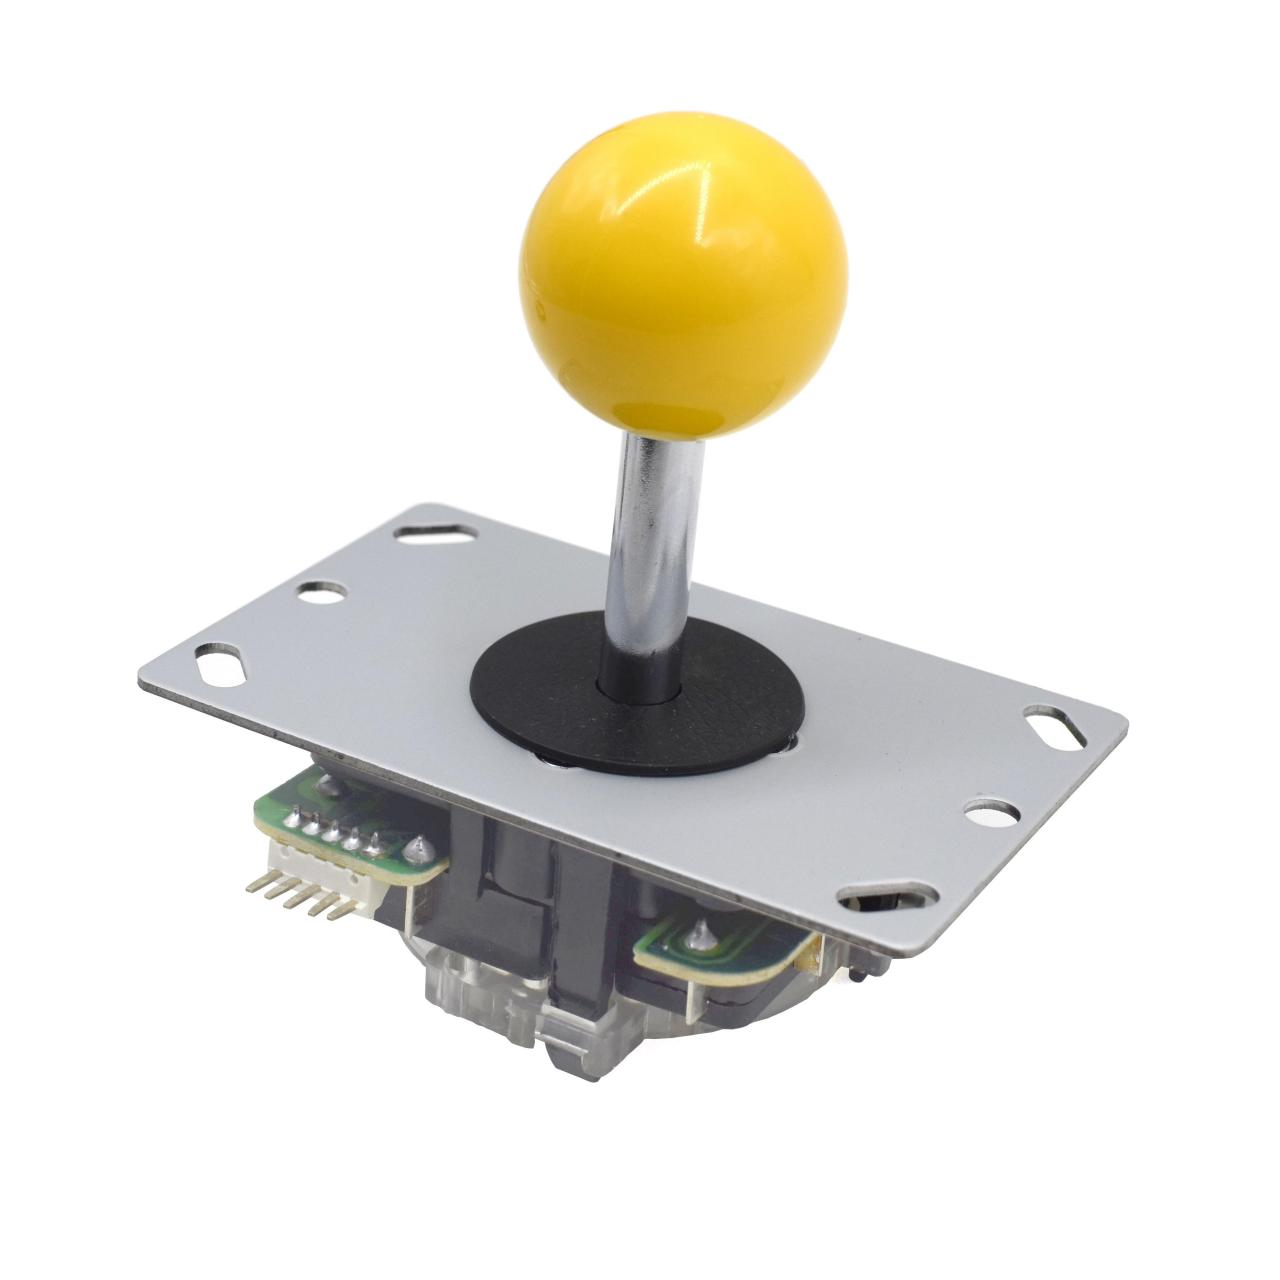 Buy cheap Yellow Ball 5Pin Micro Switche 8 Way Arcade Joystick Replacement from wholesalers